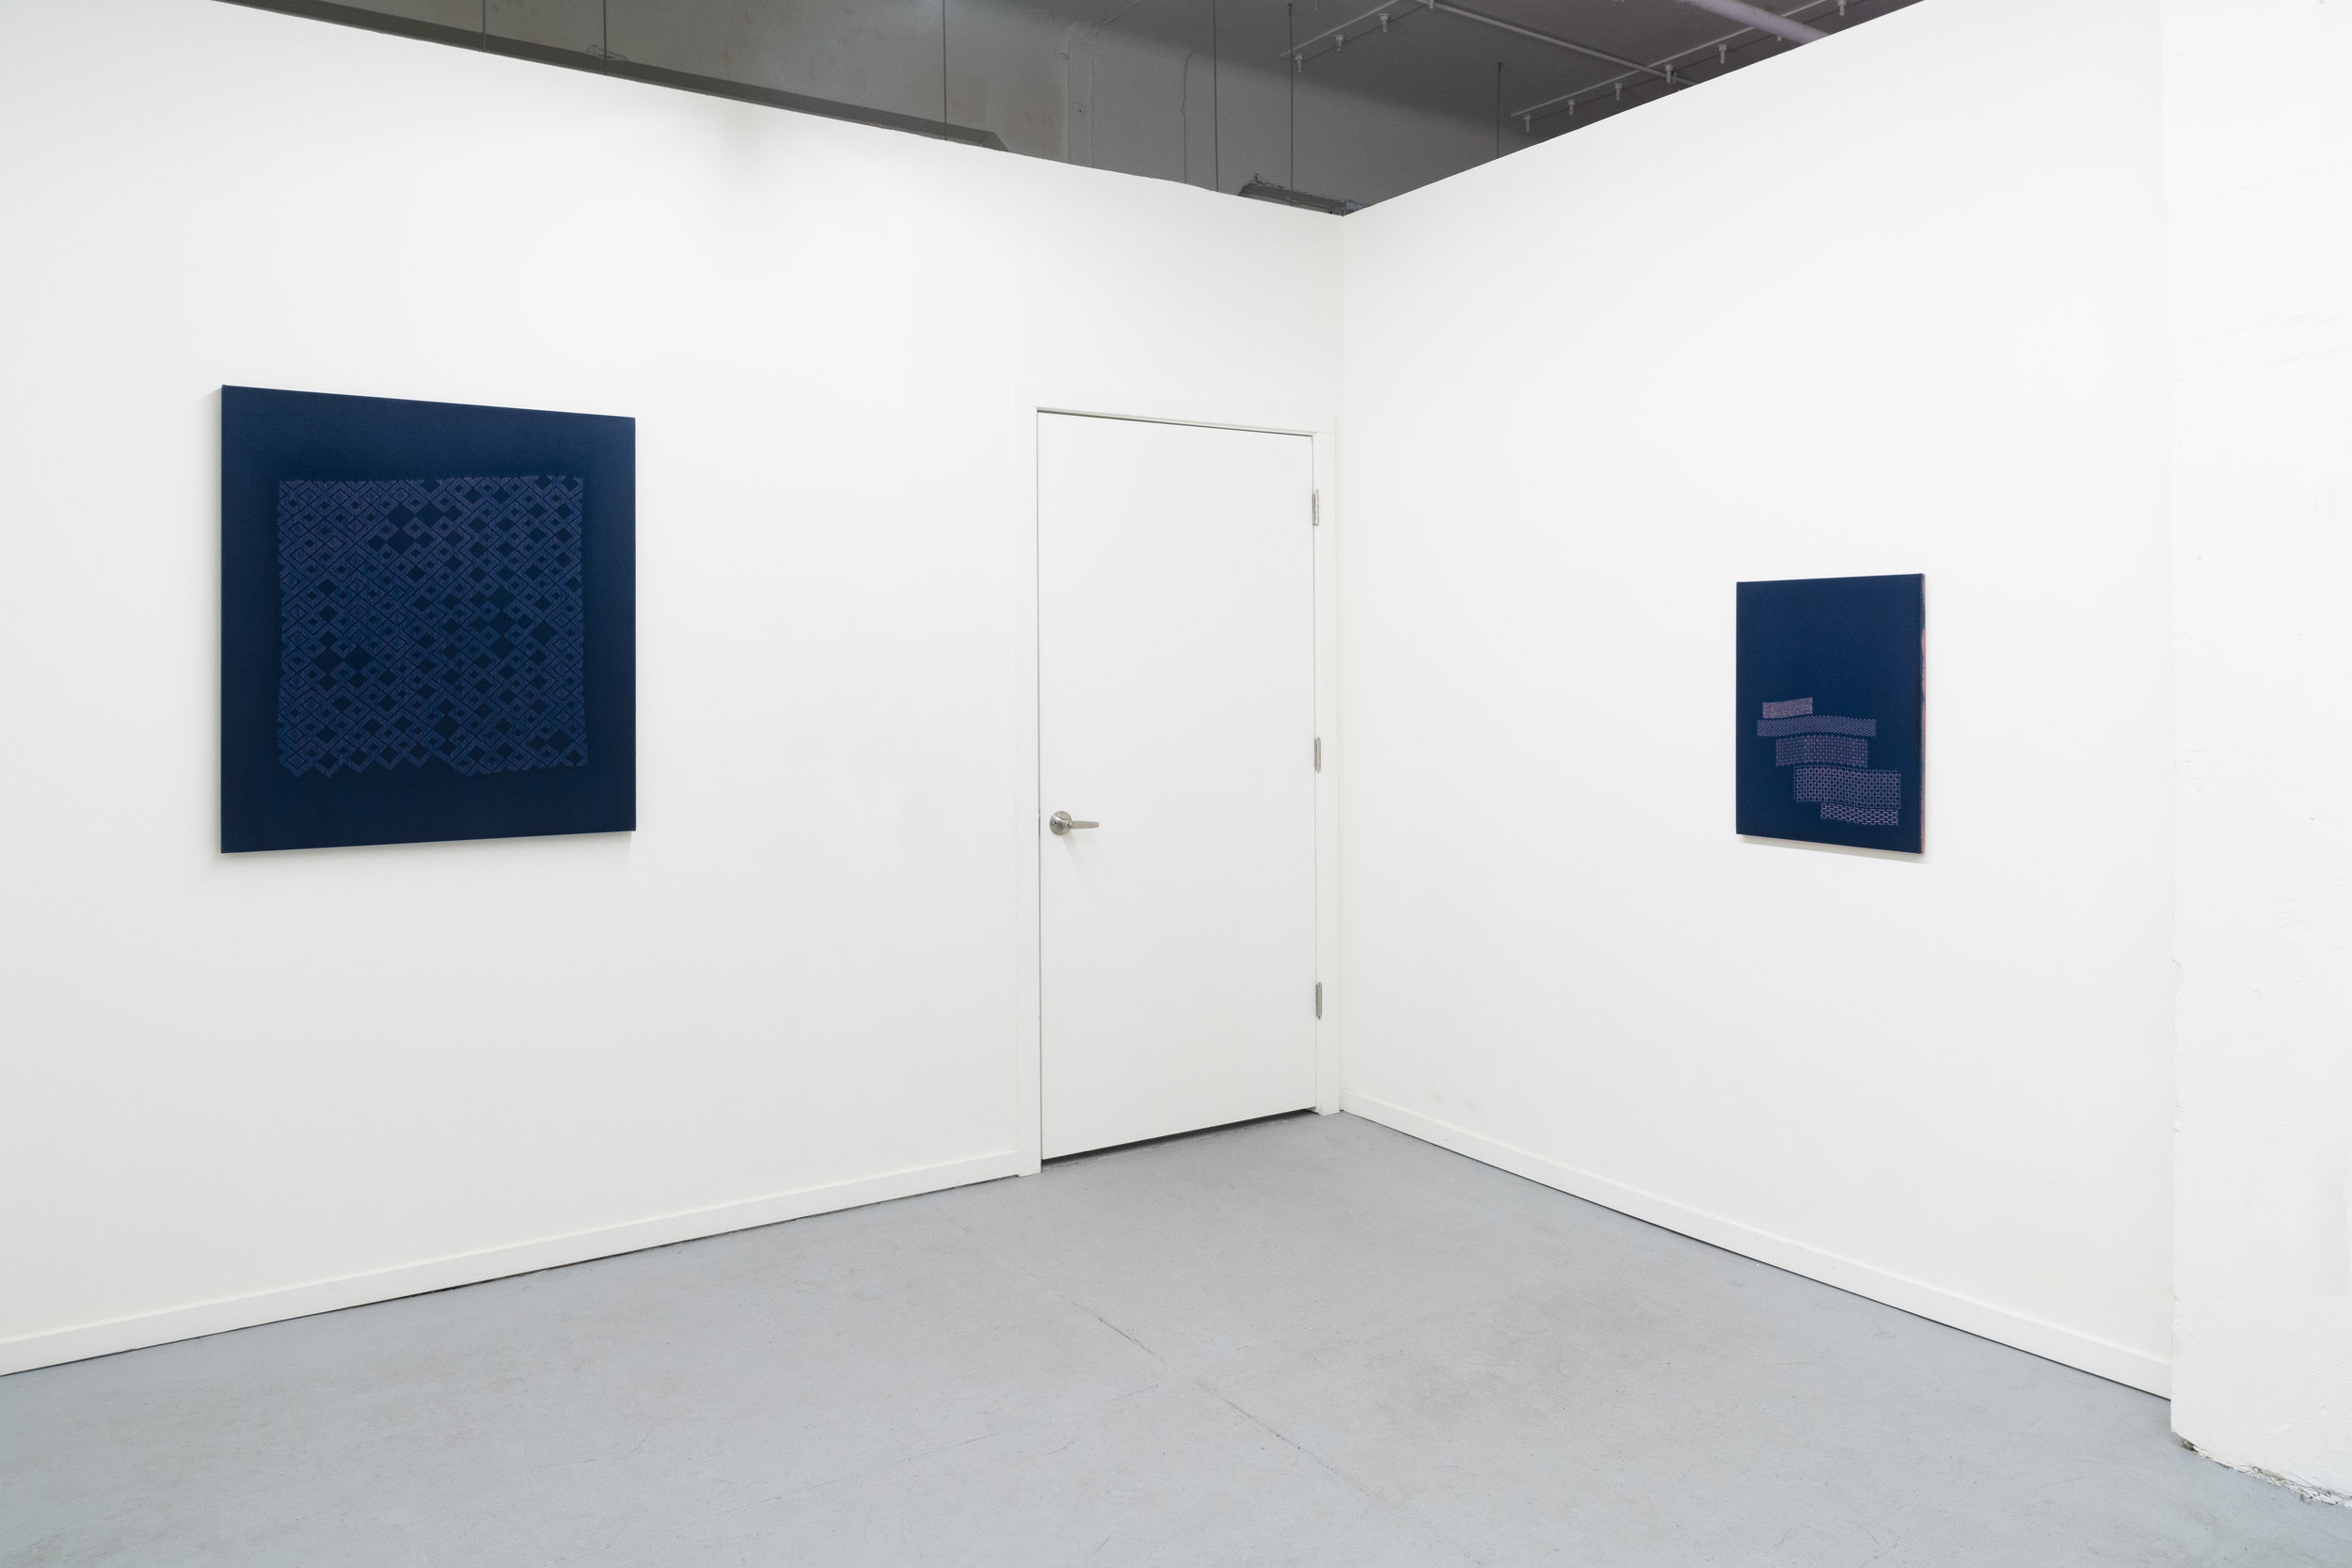 Installation view,  works and days , 2019 Specialist, Seattle, WA